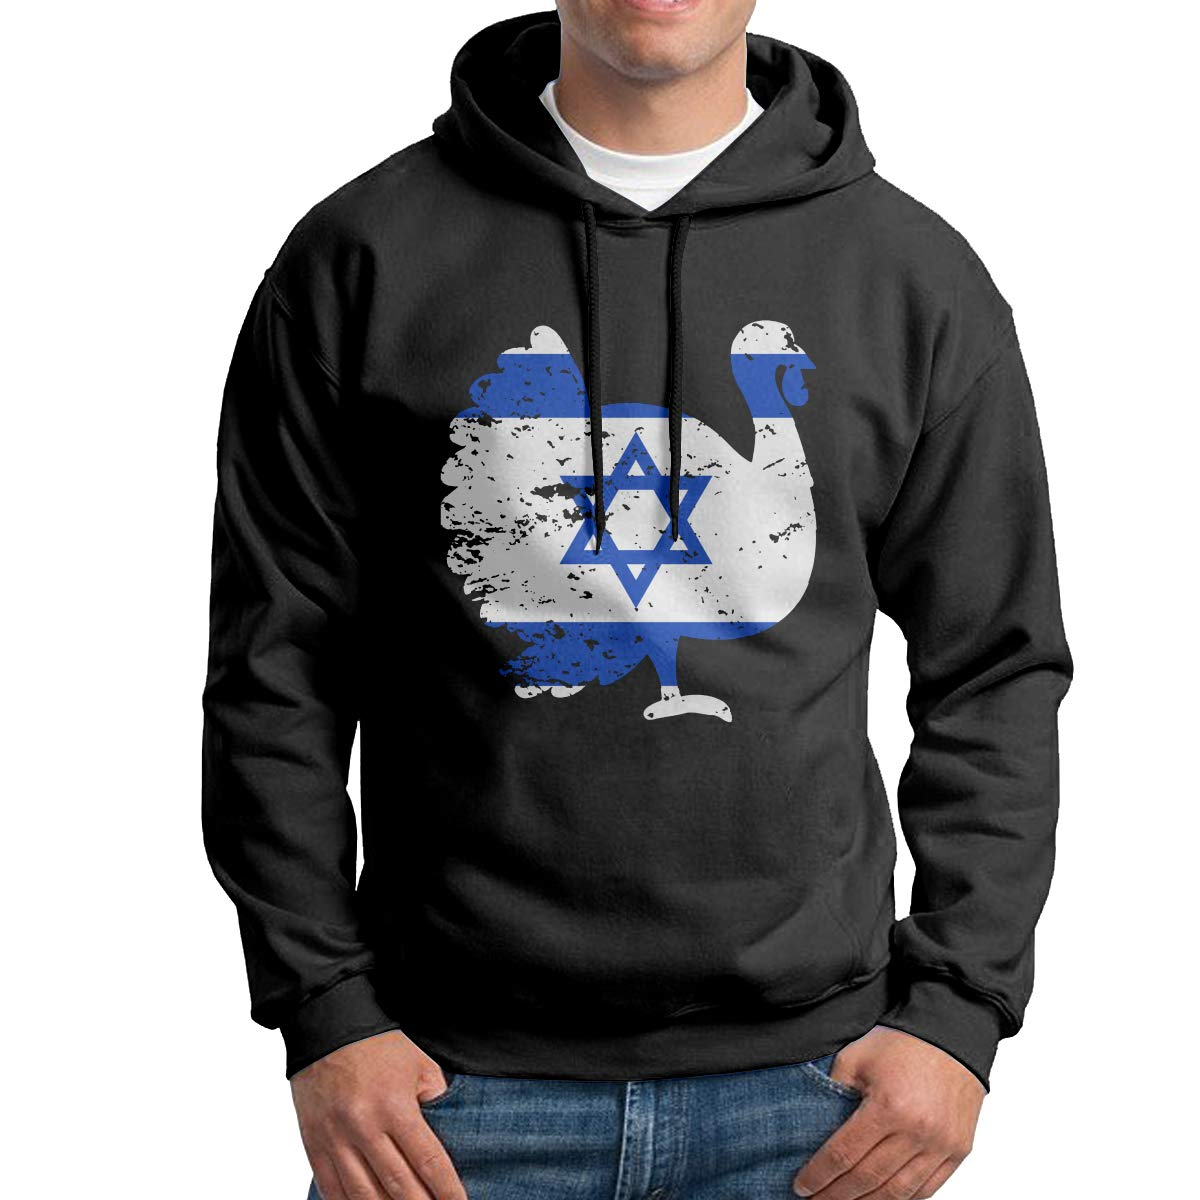 Men Pullover Hoodies Patriotic Turkey Israel Flag Long Sleeve Fleece Hooded Sweatshirt Sweater Blouses Tops